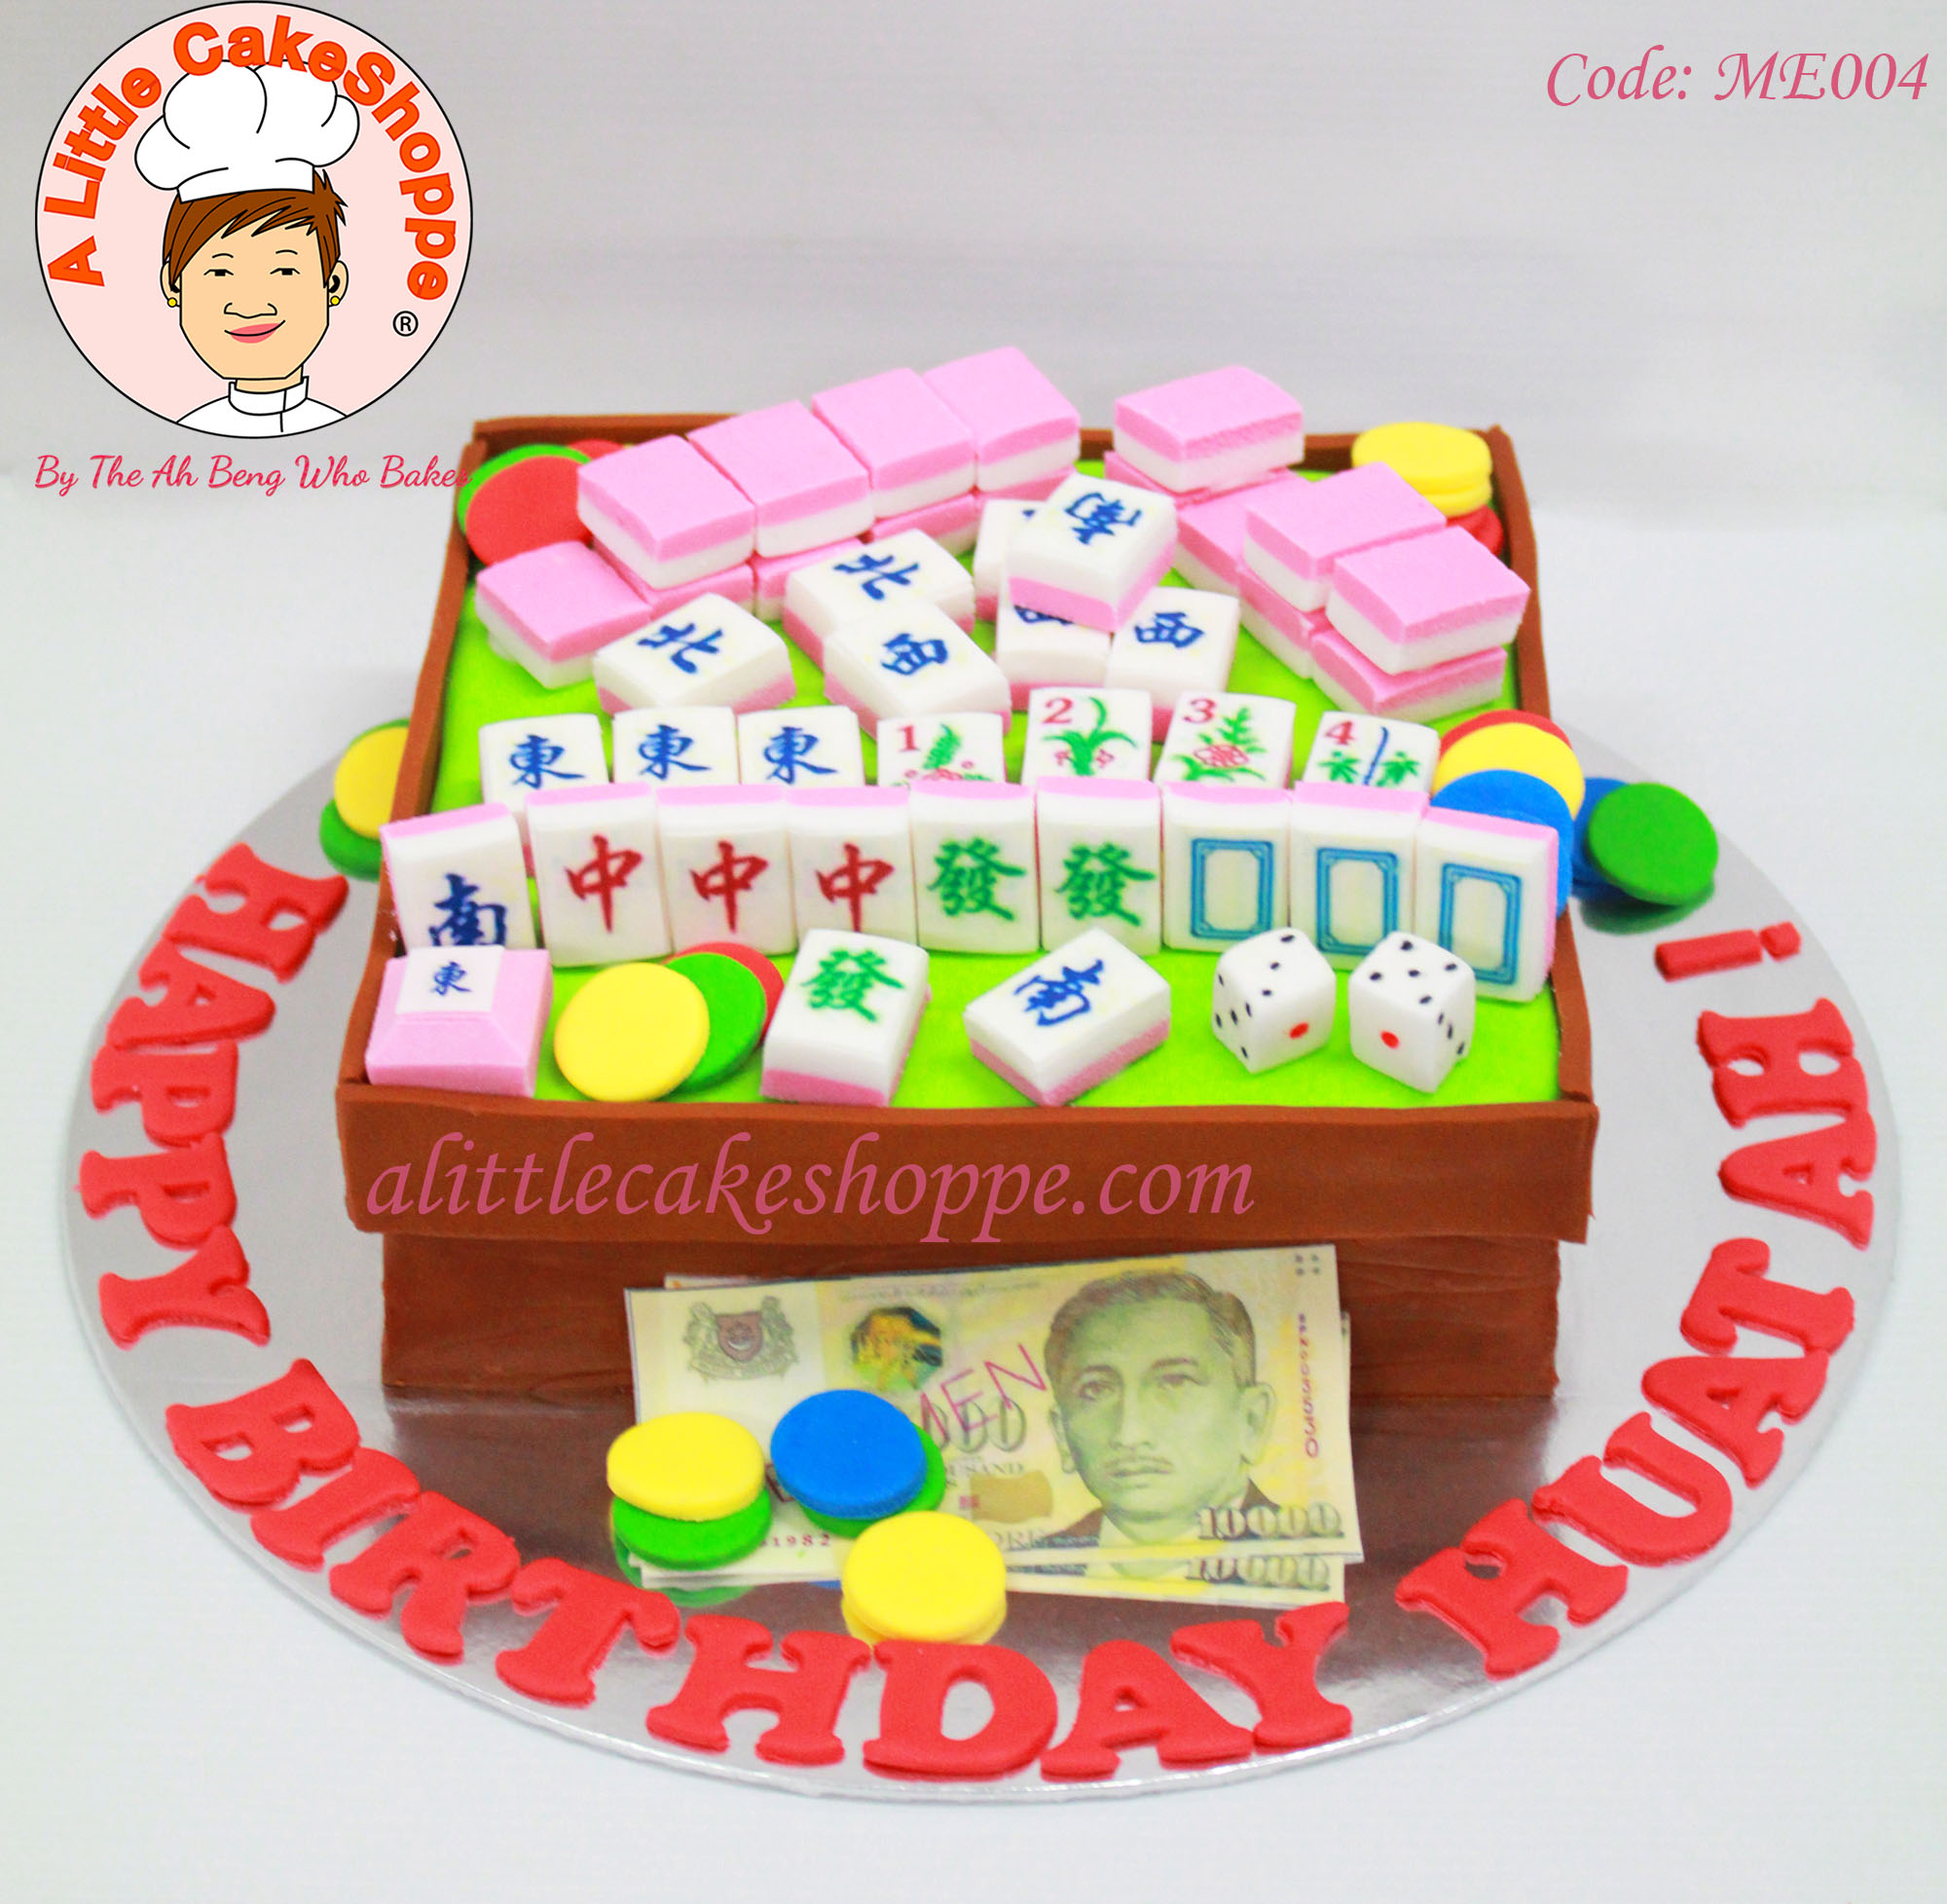 Best Customised Cake Shop Singapore custom cake 2D 3D birthday cake cupcakes desserts wedding corporate events anniversary 1st birthday 21st birthday fondant fresh cream buttercream cakes alittlecakeshoppe a little cake shoppe compliments review singapore bakers SG cake shop cakeshop ah beng who bakes mahjong gambling